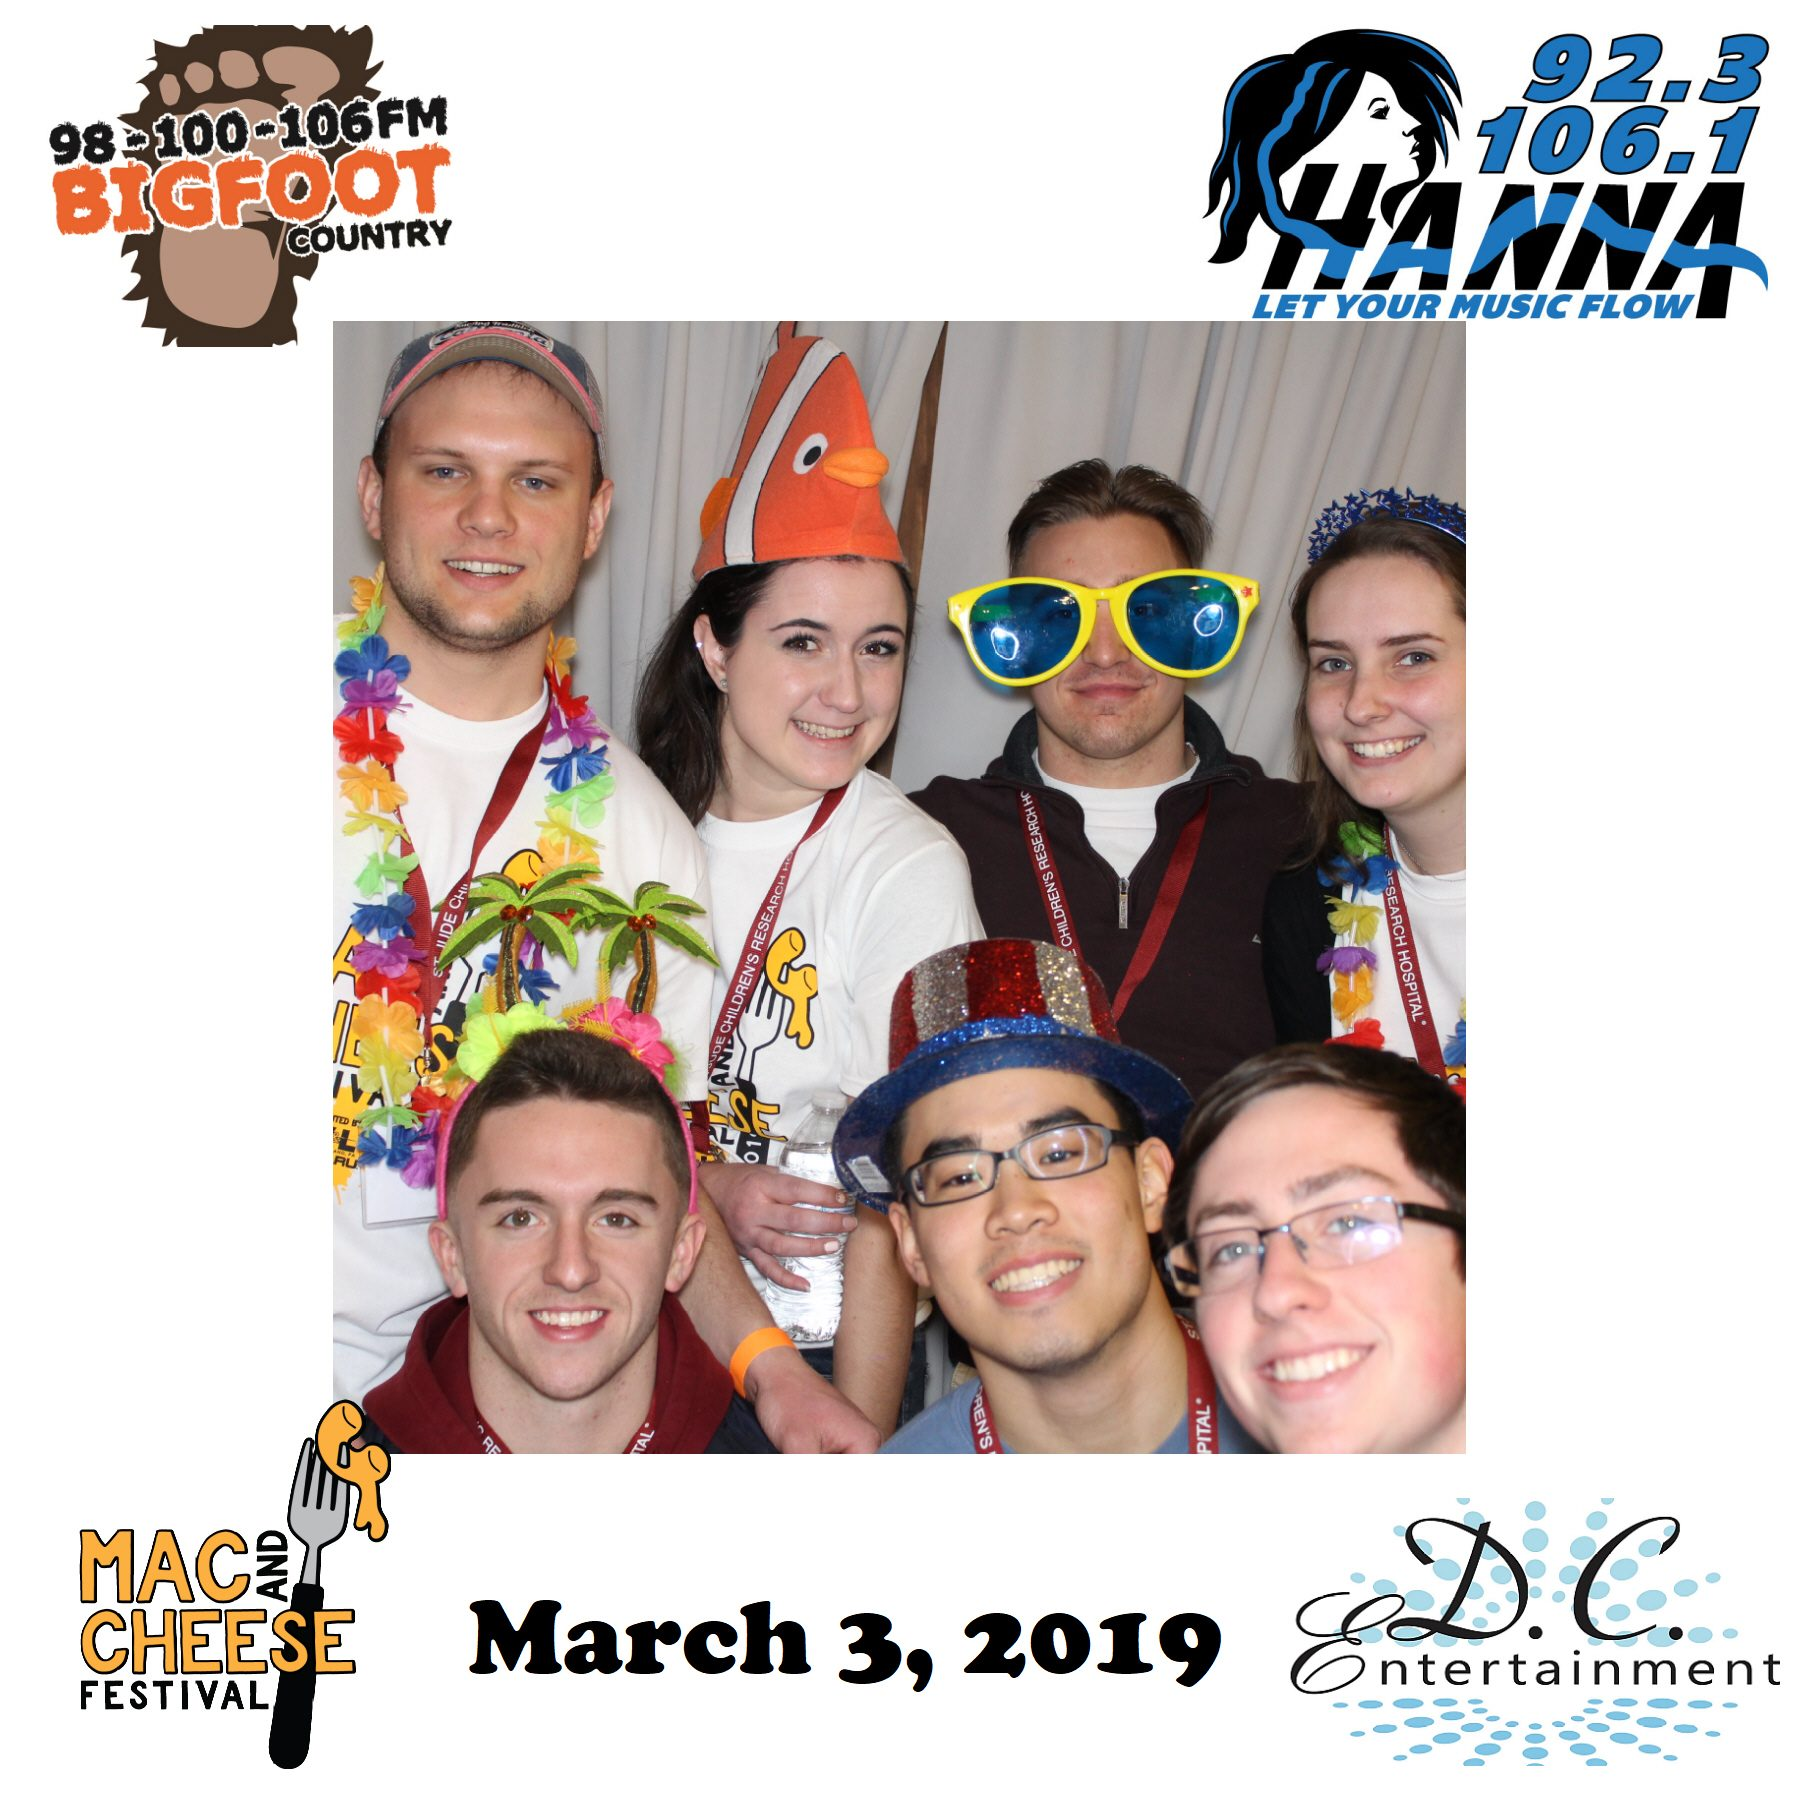 Your Mac and Cheese Fest Photo Booth Pics are Here!